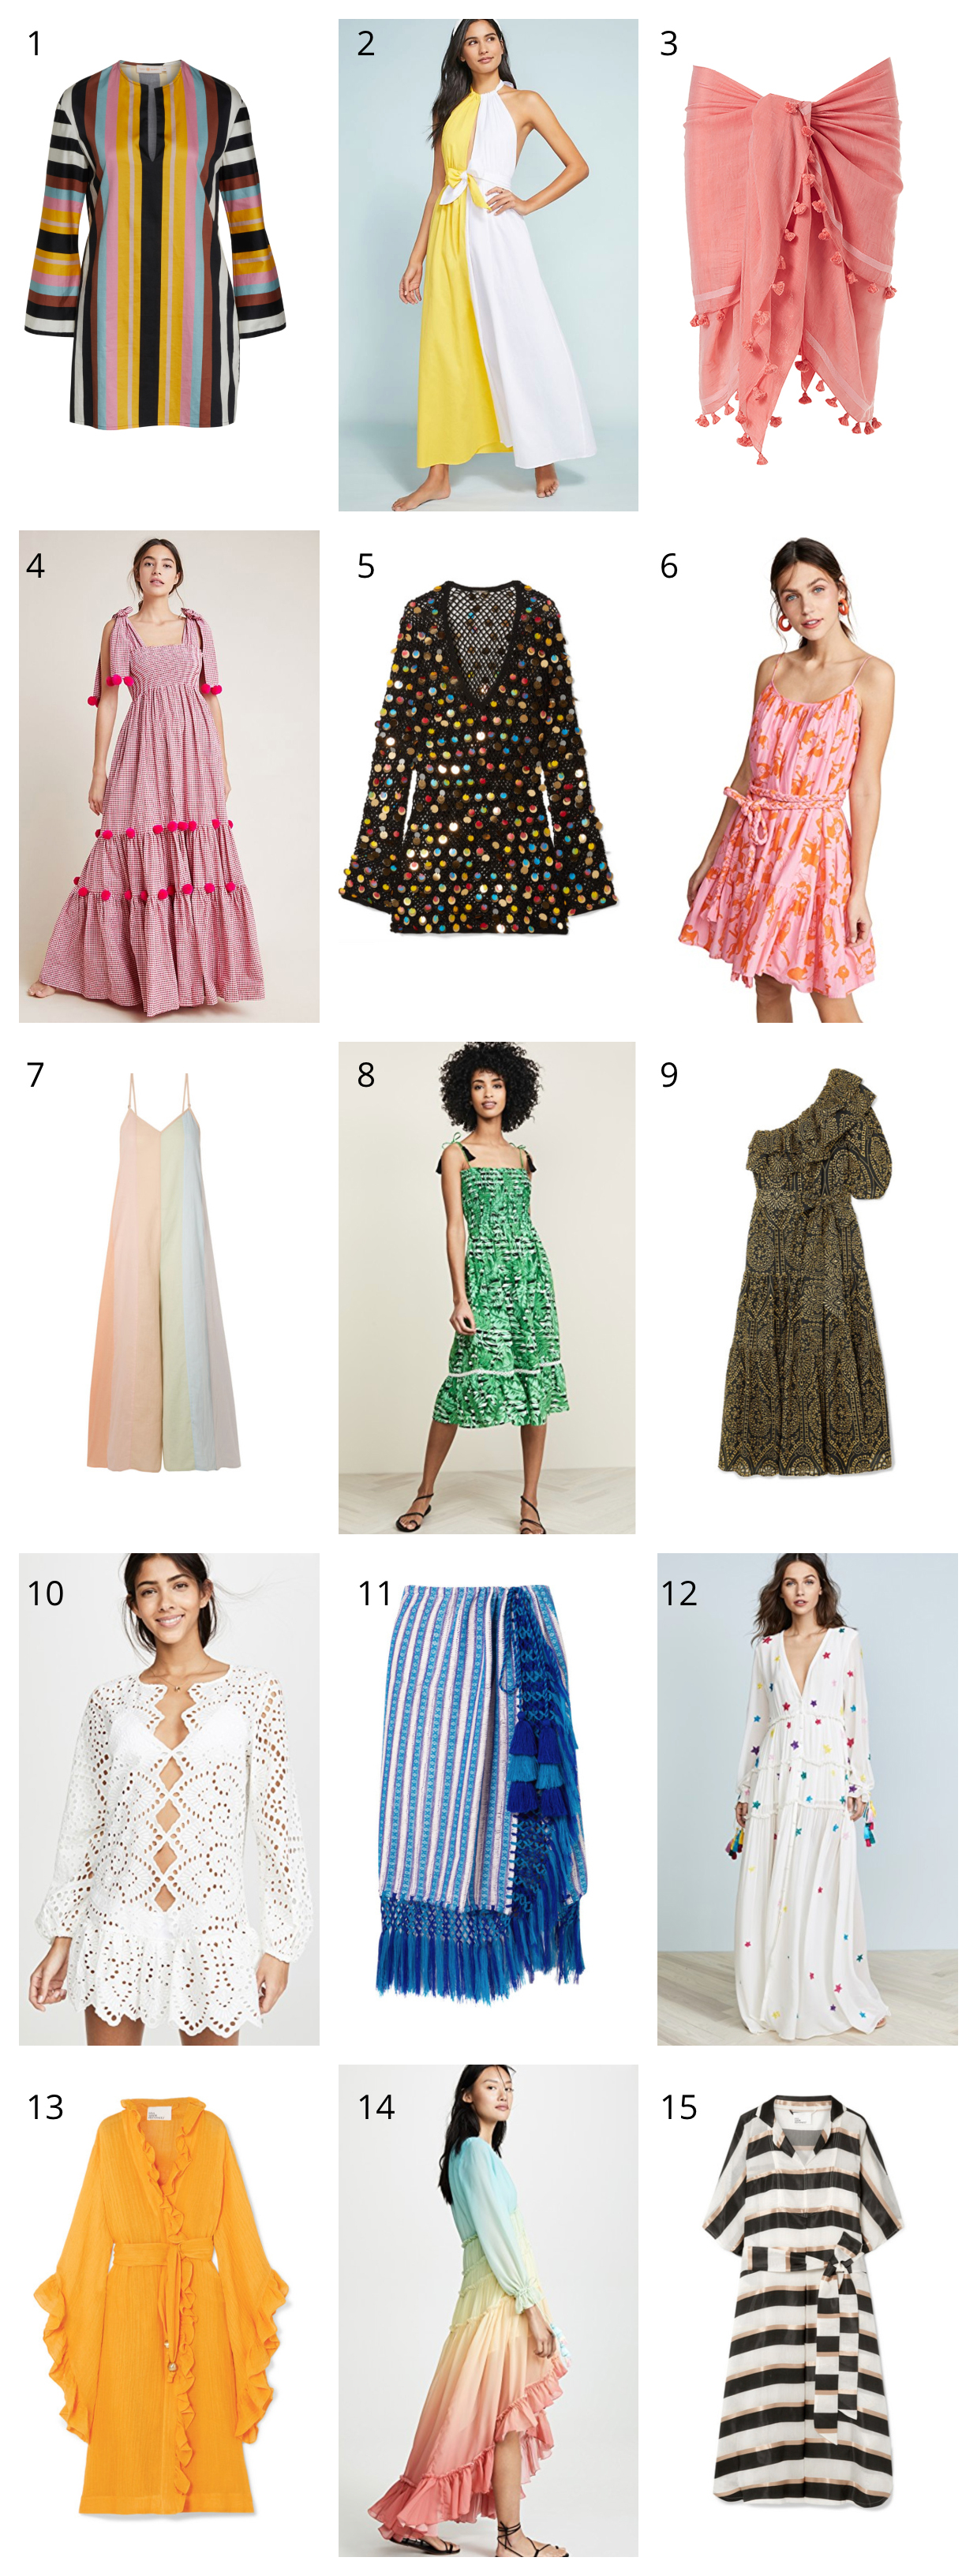 24084e40a8b97 I am currently down in Florida and living my best life in gauzy kaftans,  easy sarongs, and casual throw-on tunics. I am rounding up all my current  favorites ...